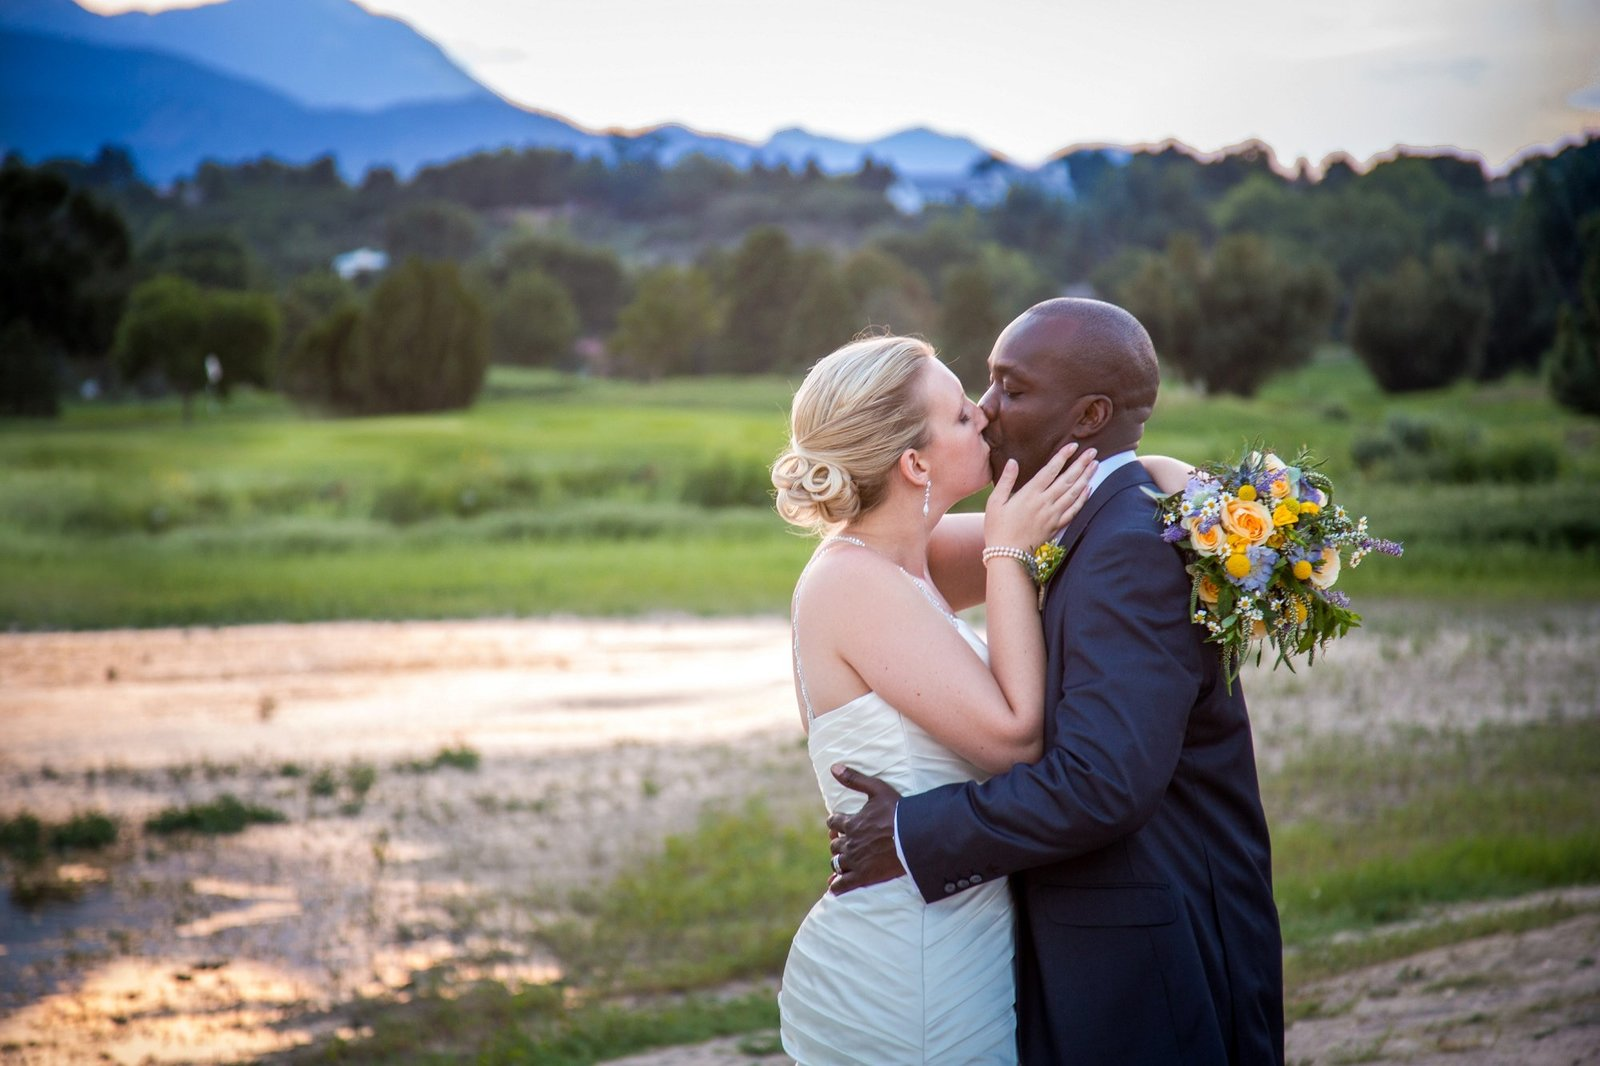 Bride + Groom Portraits Denver Colorado Springs CO Wedding Photographer Genevieve Hansen 026